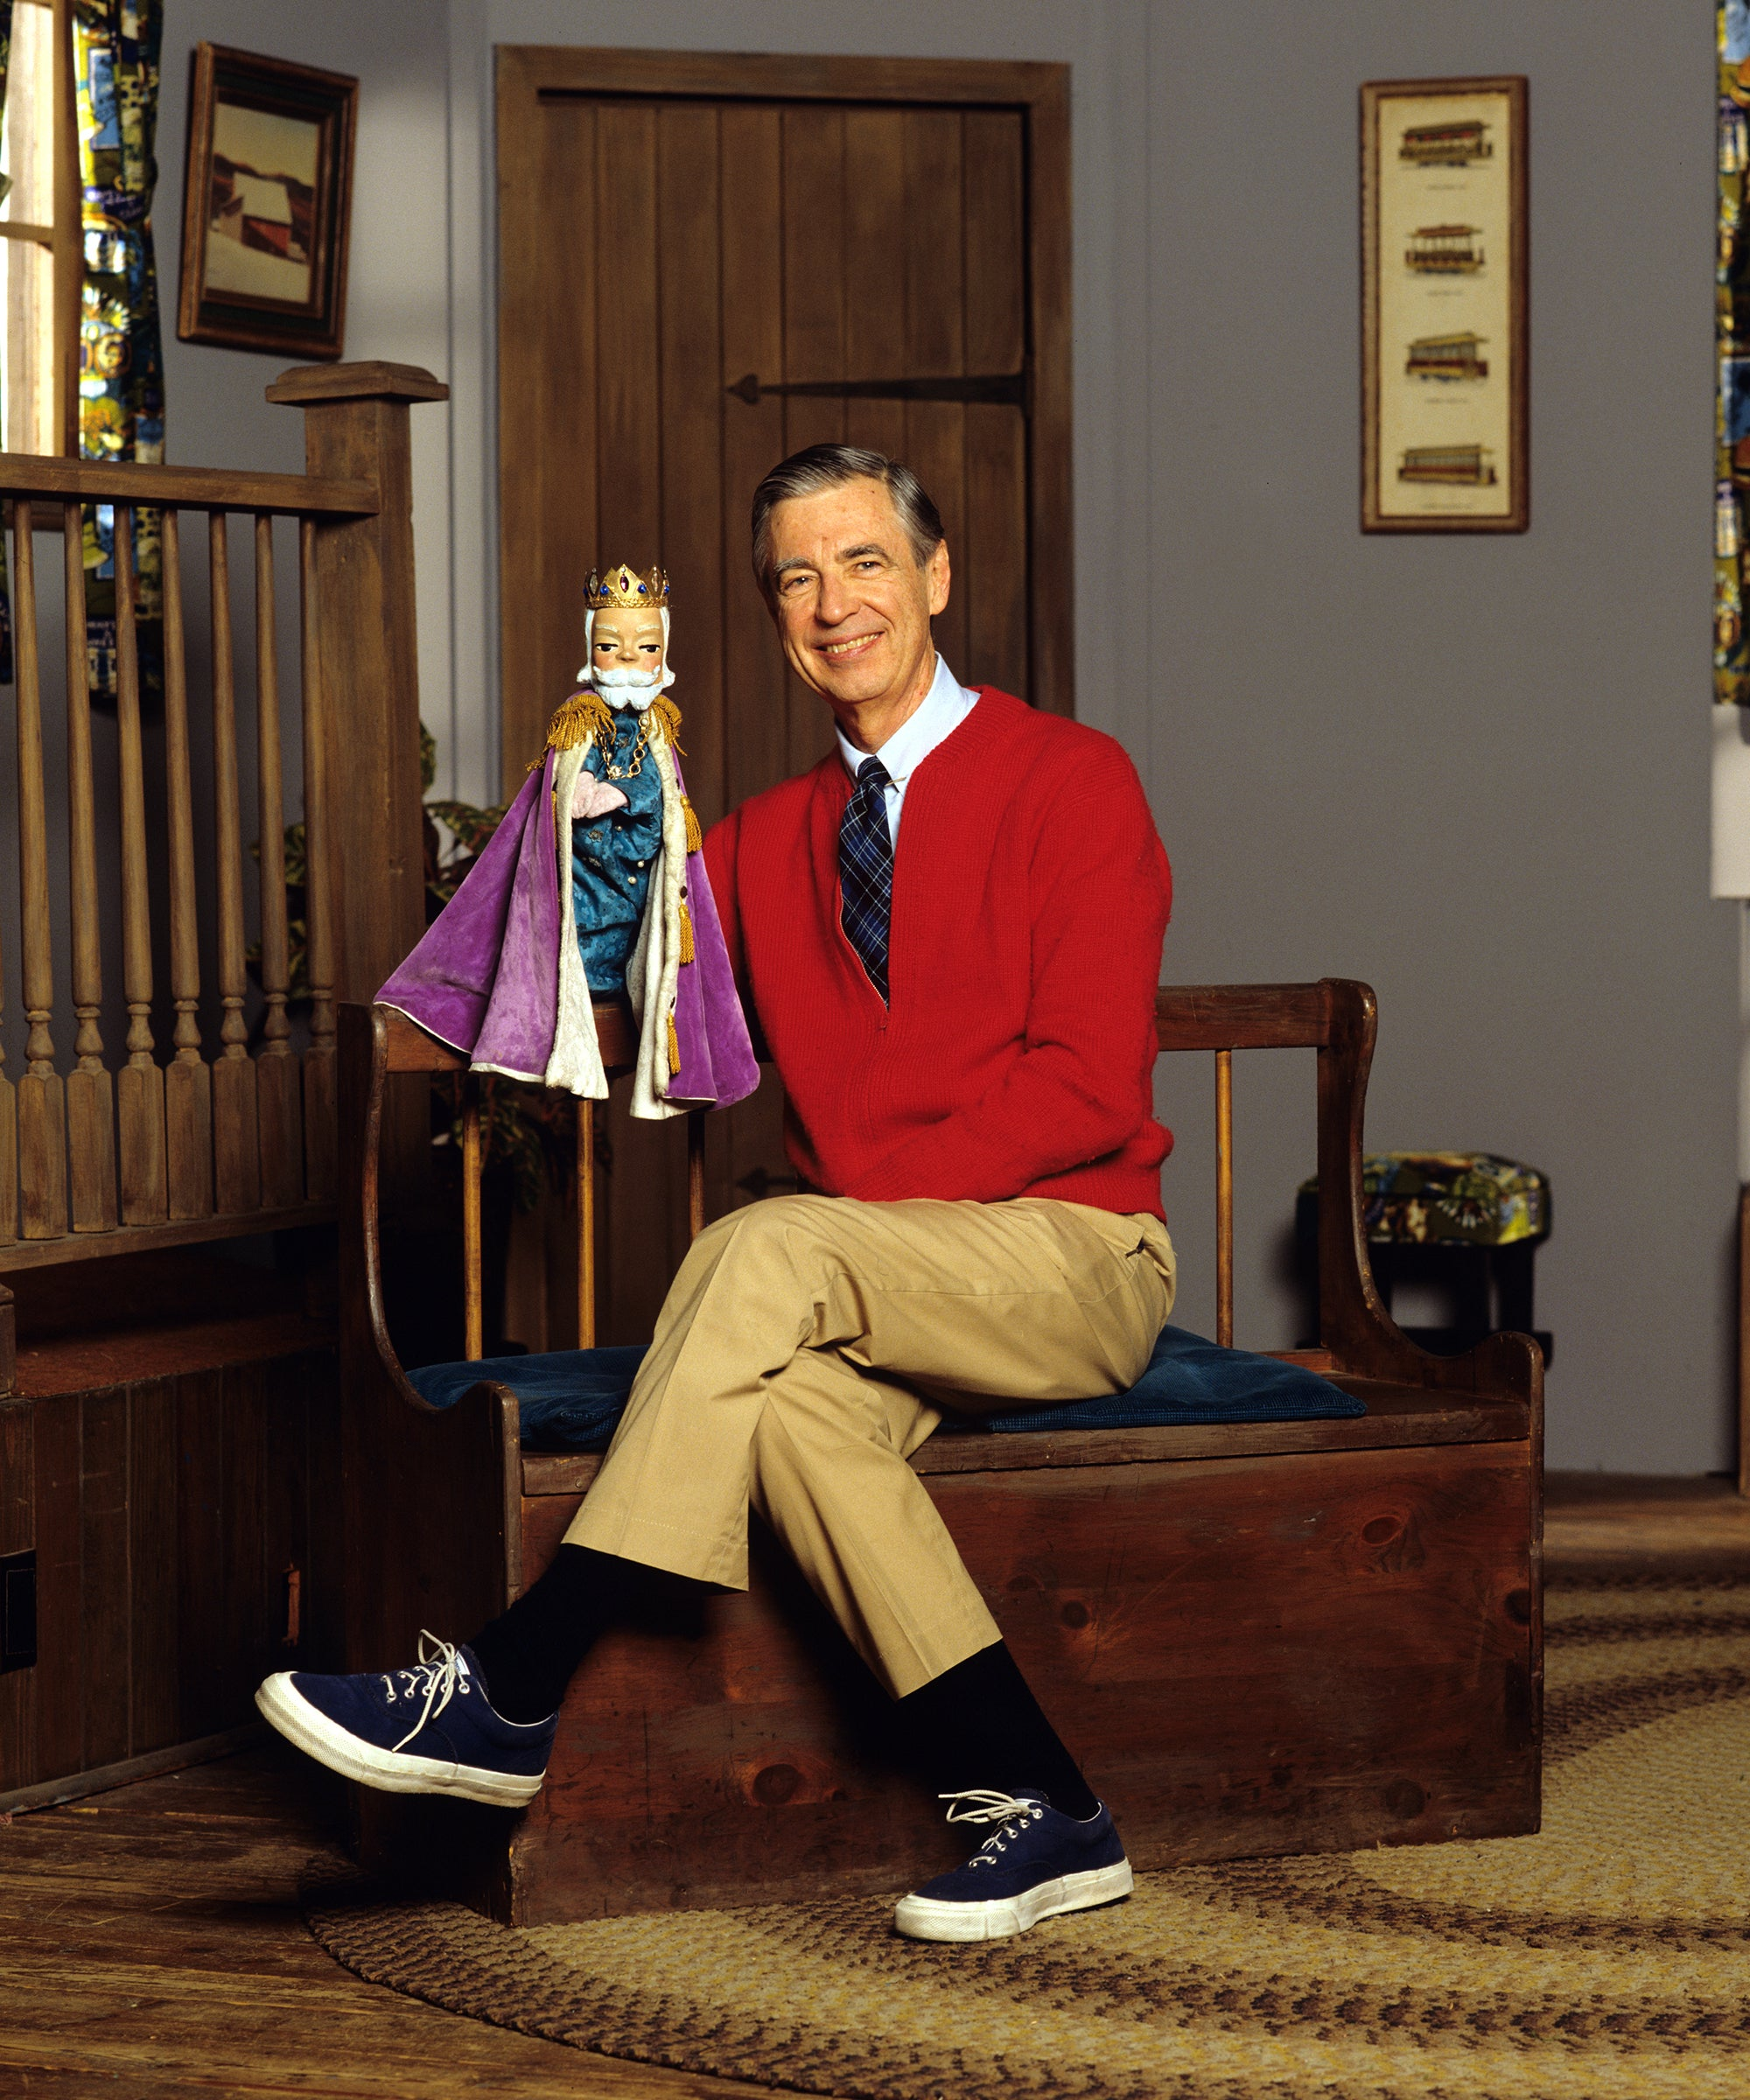 Mr Rogers Best Moments And Most Memorable Videos